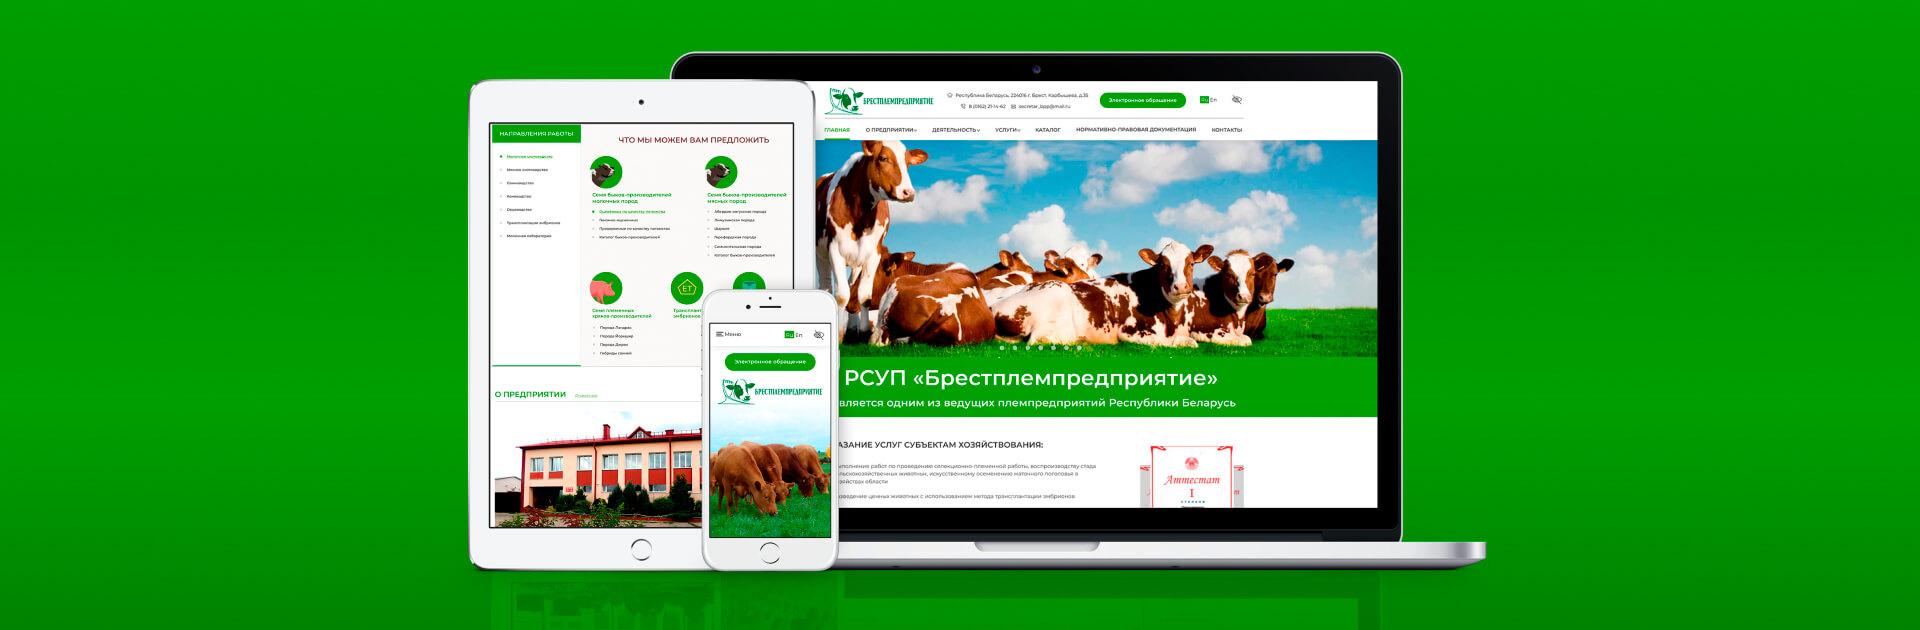 Development of a corporate website for an agricultural organization